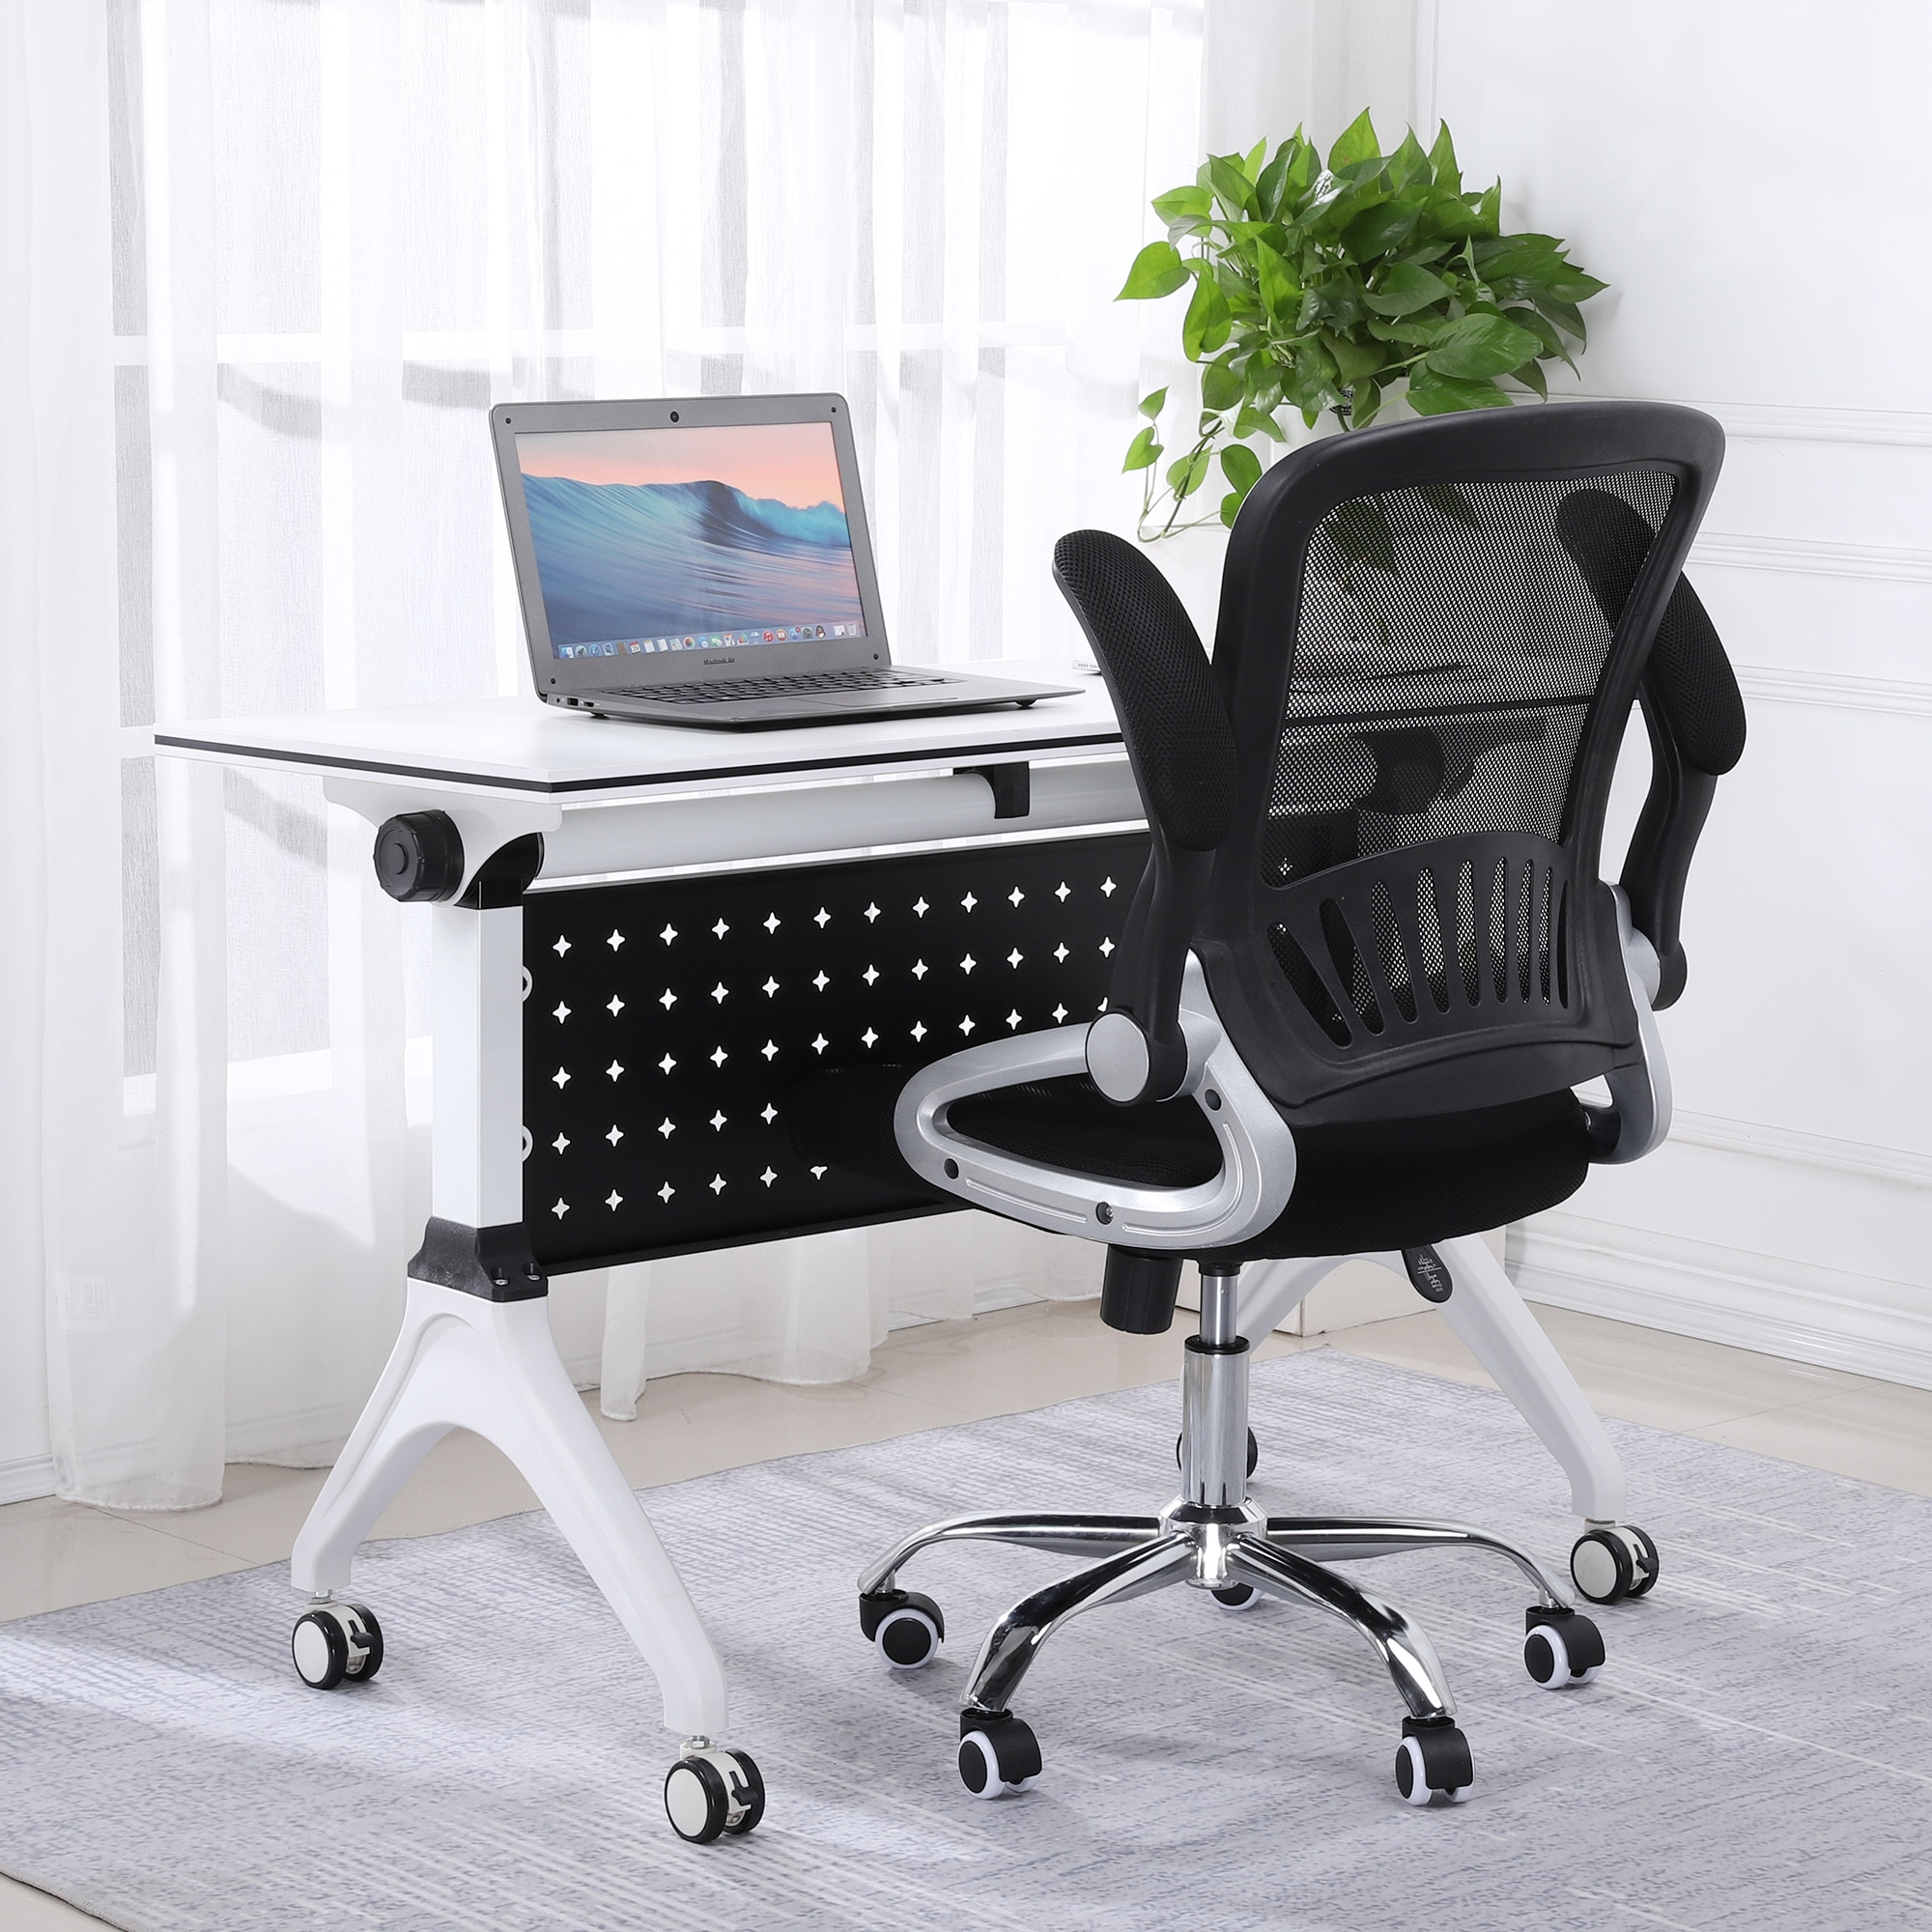 H5aa387db3d2b4f3b9f53b7eddcefc4b2N - Sigtua Swivel Office Chair Height-adjustable Desk Chair Breathable PC Chair Comfortable Ergonomic Executive Computer Chair Black